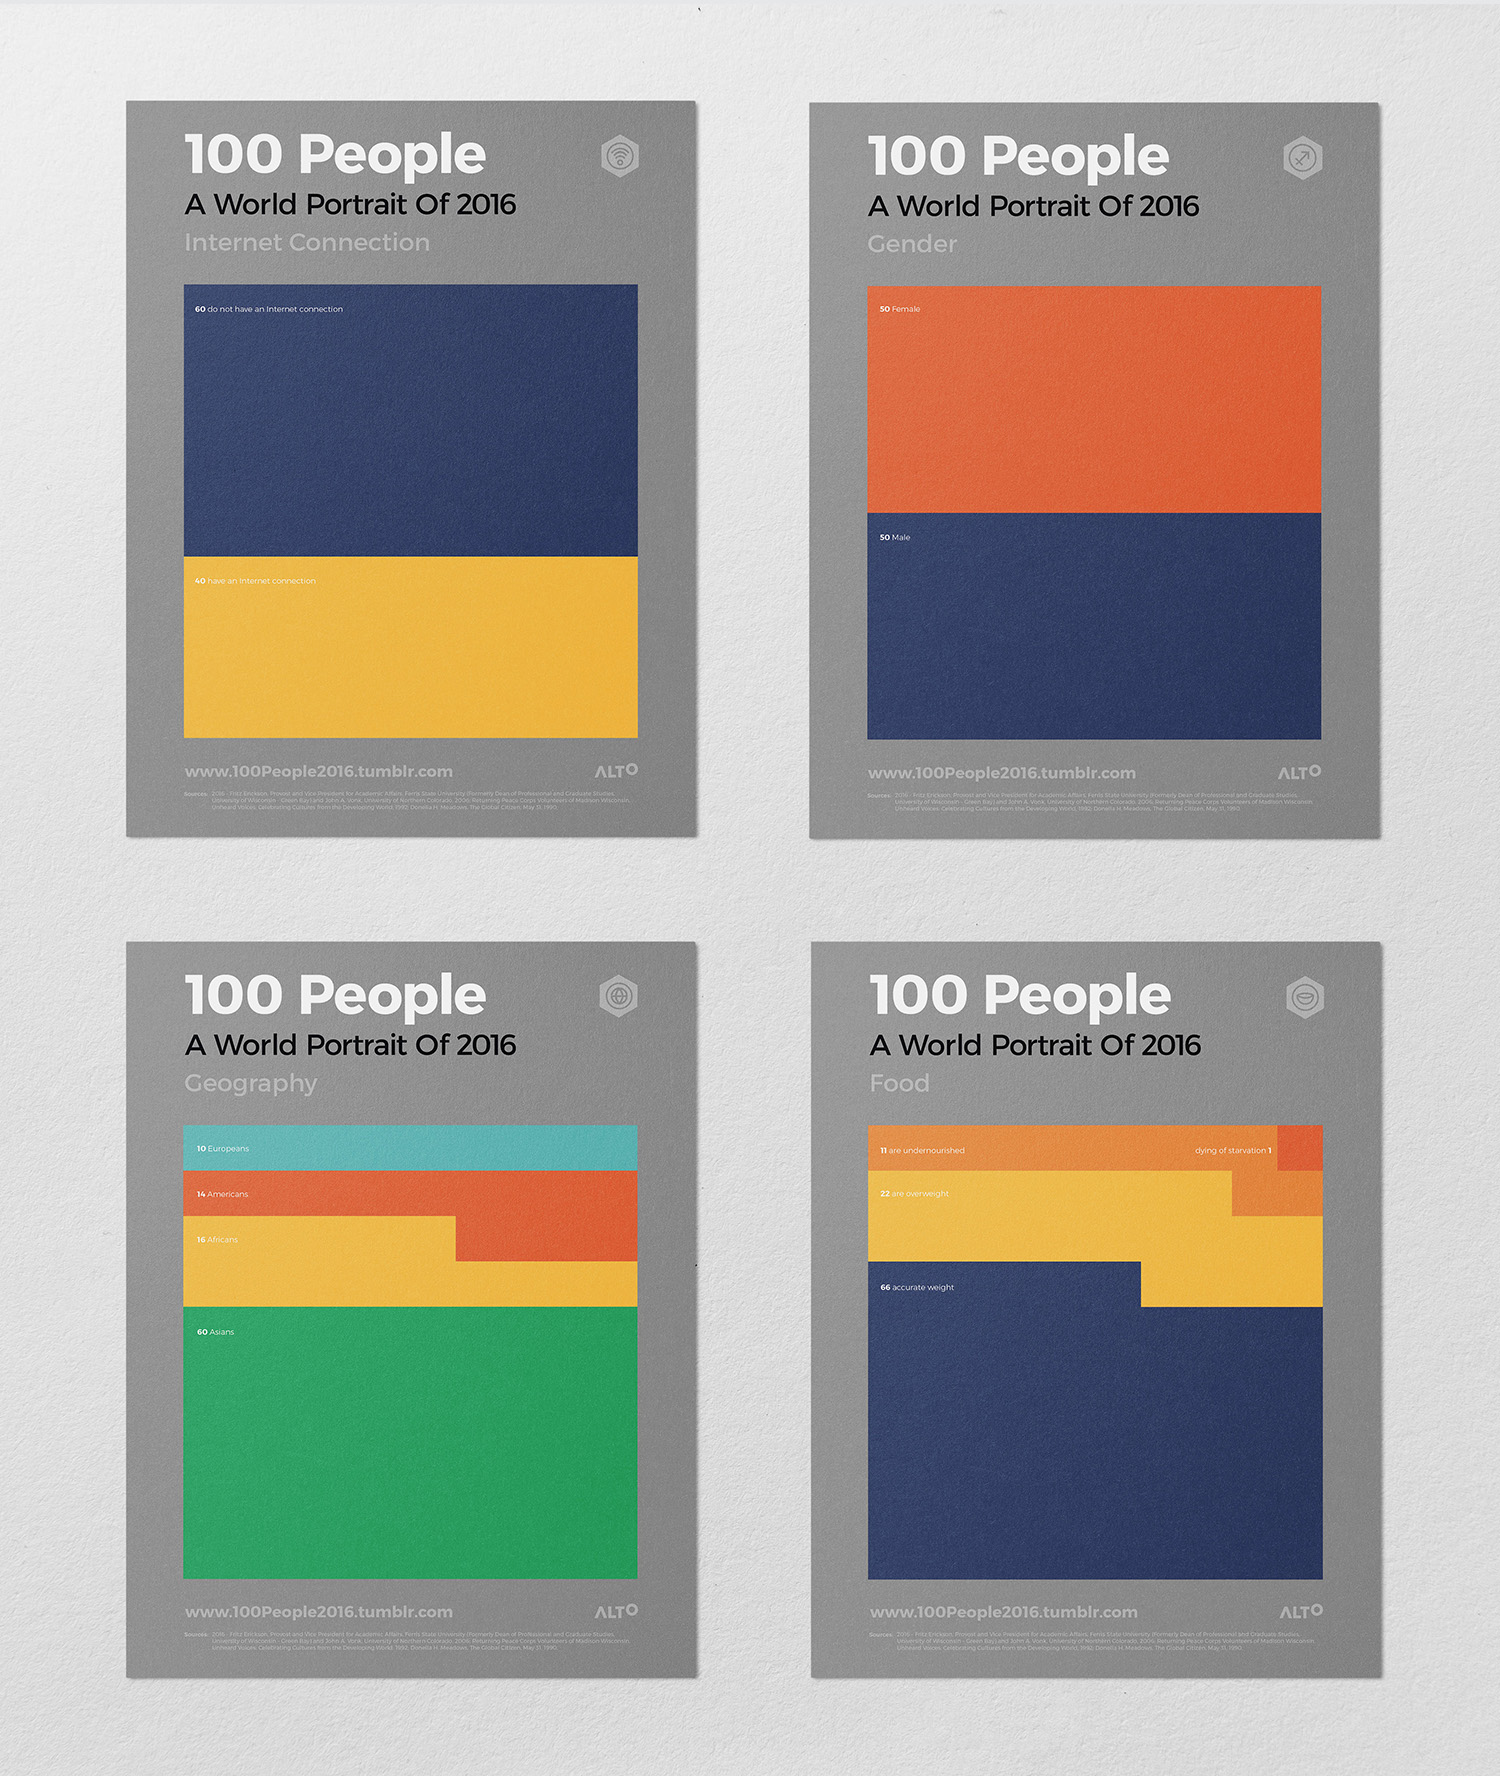 alto 100 people posters2